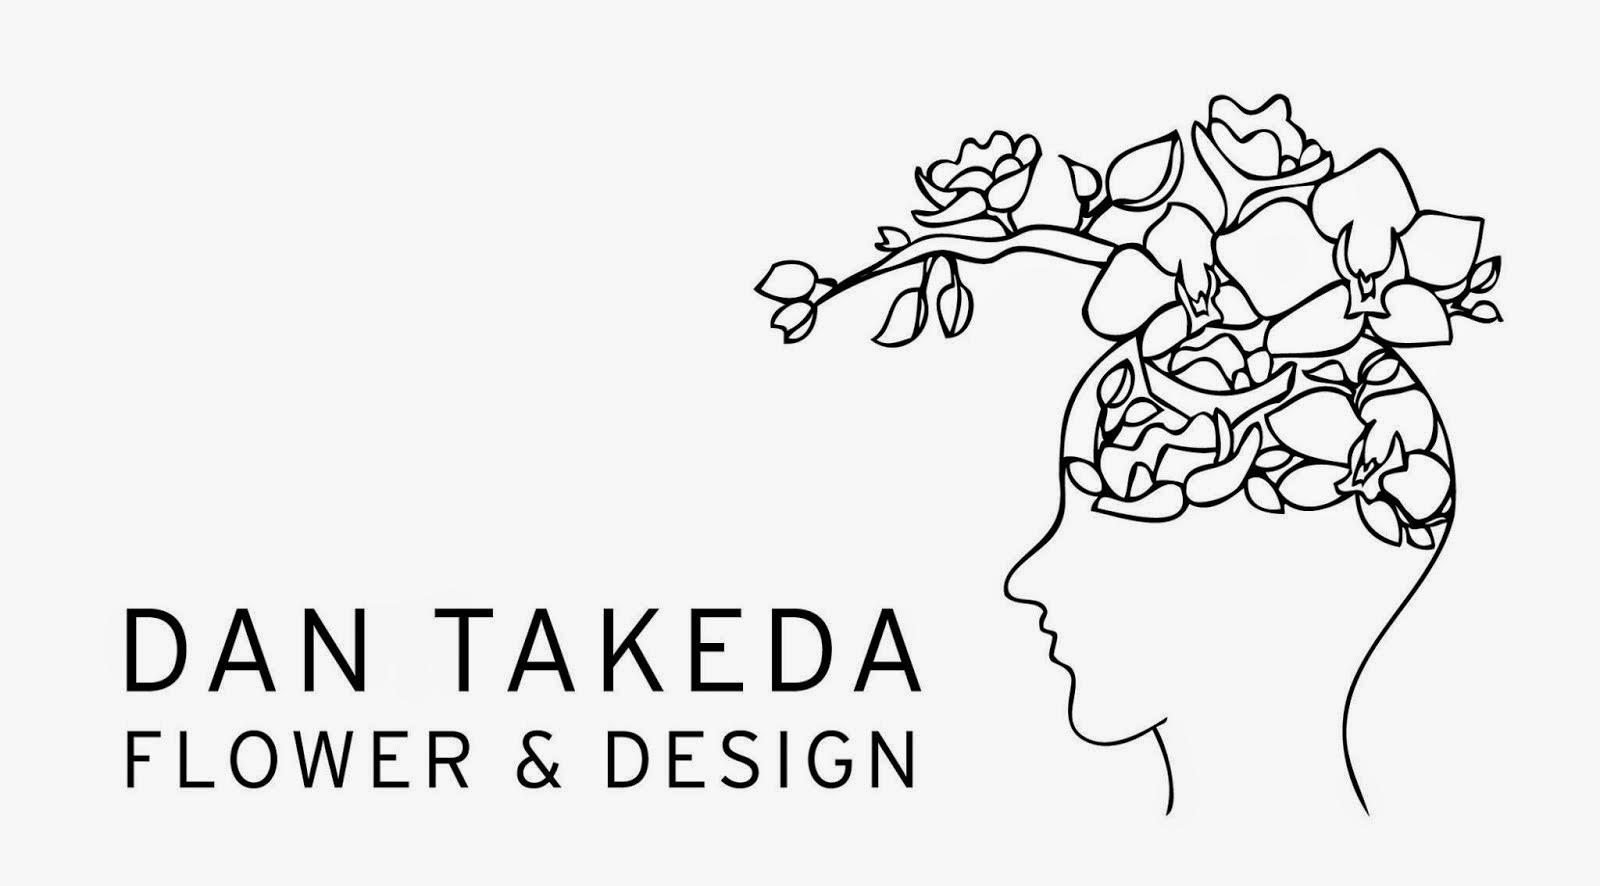 DAN TAKEDA FLOWER & DESIGN